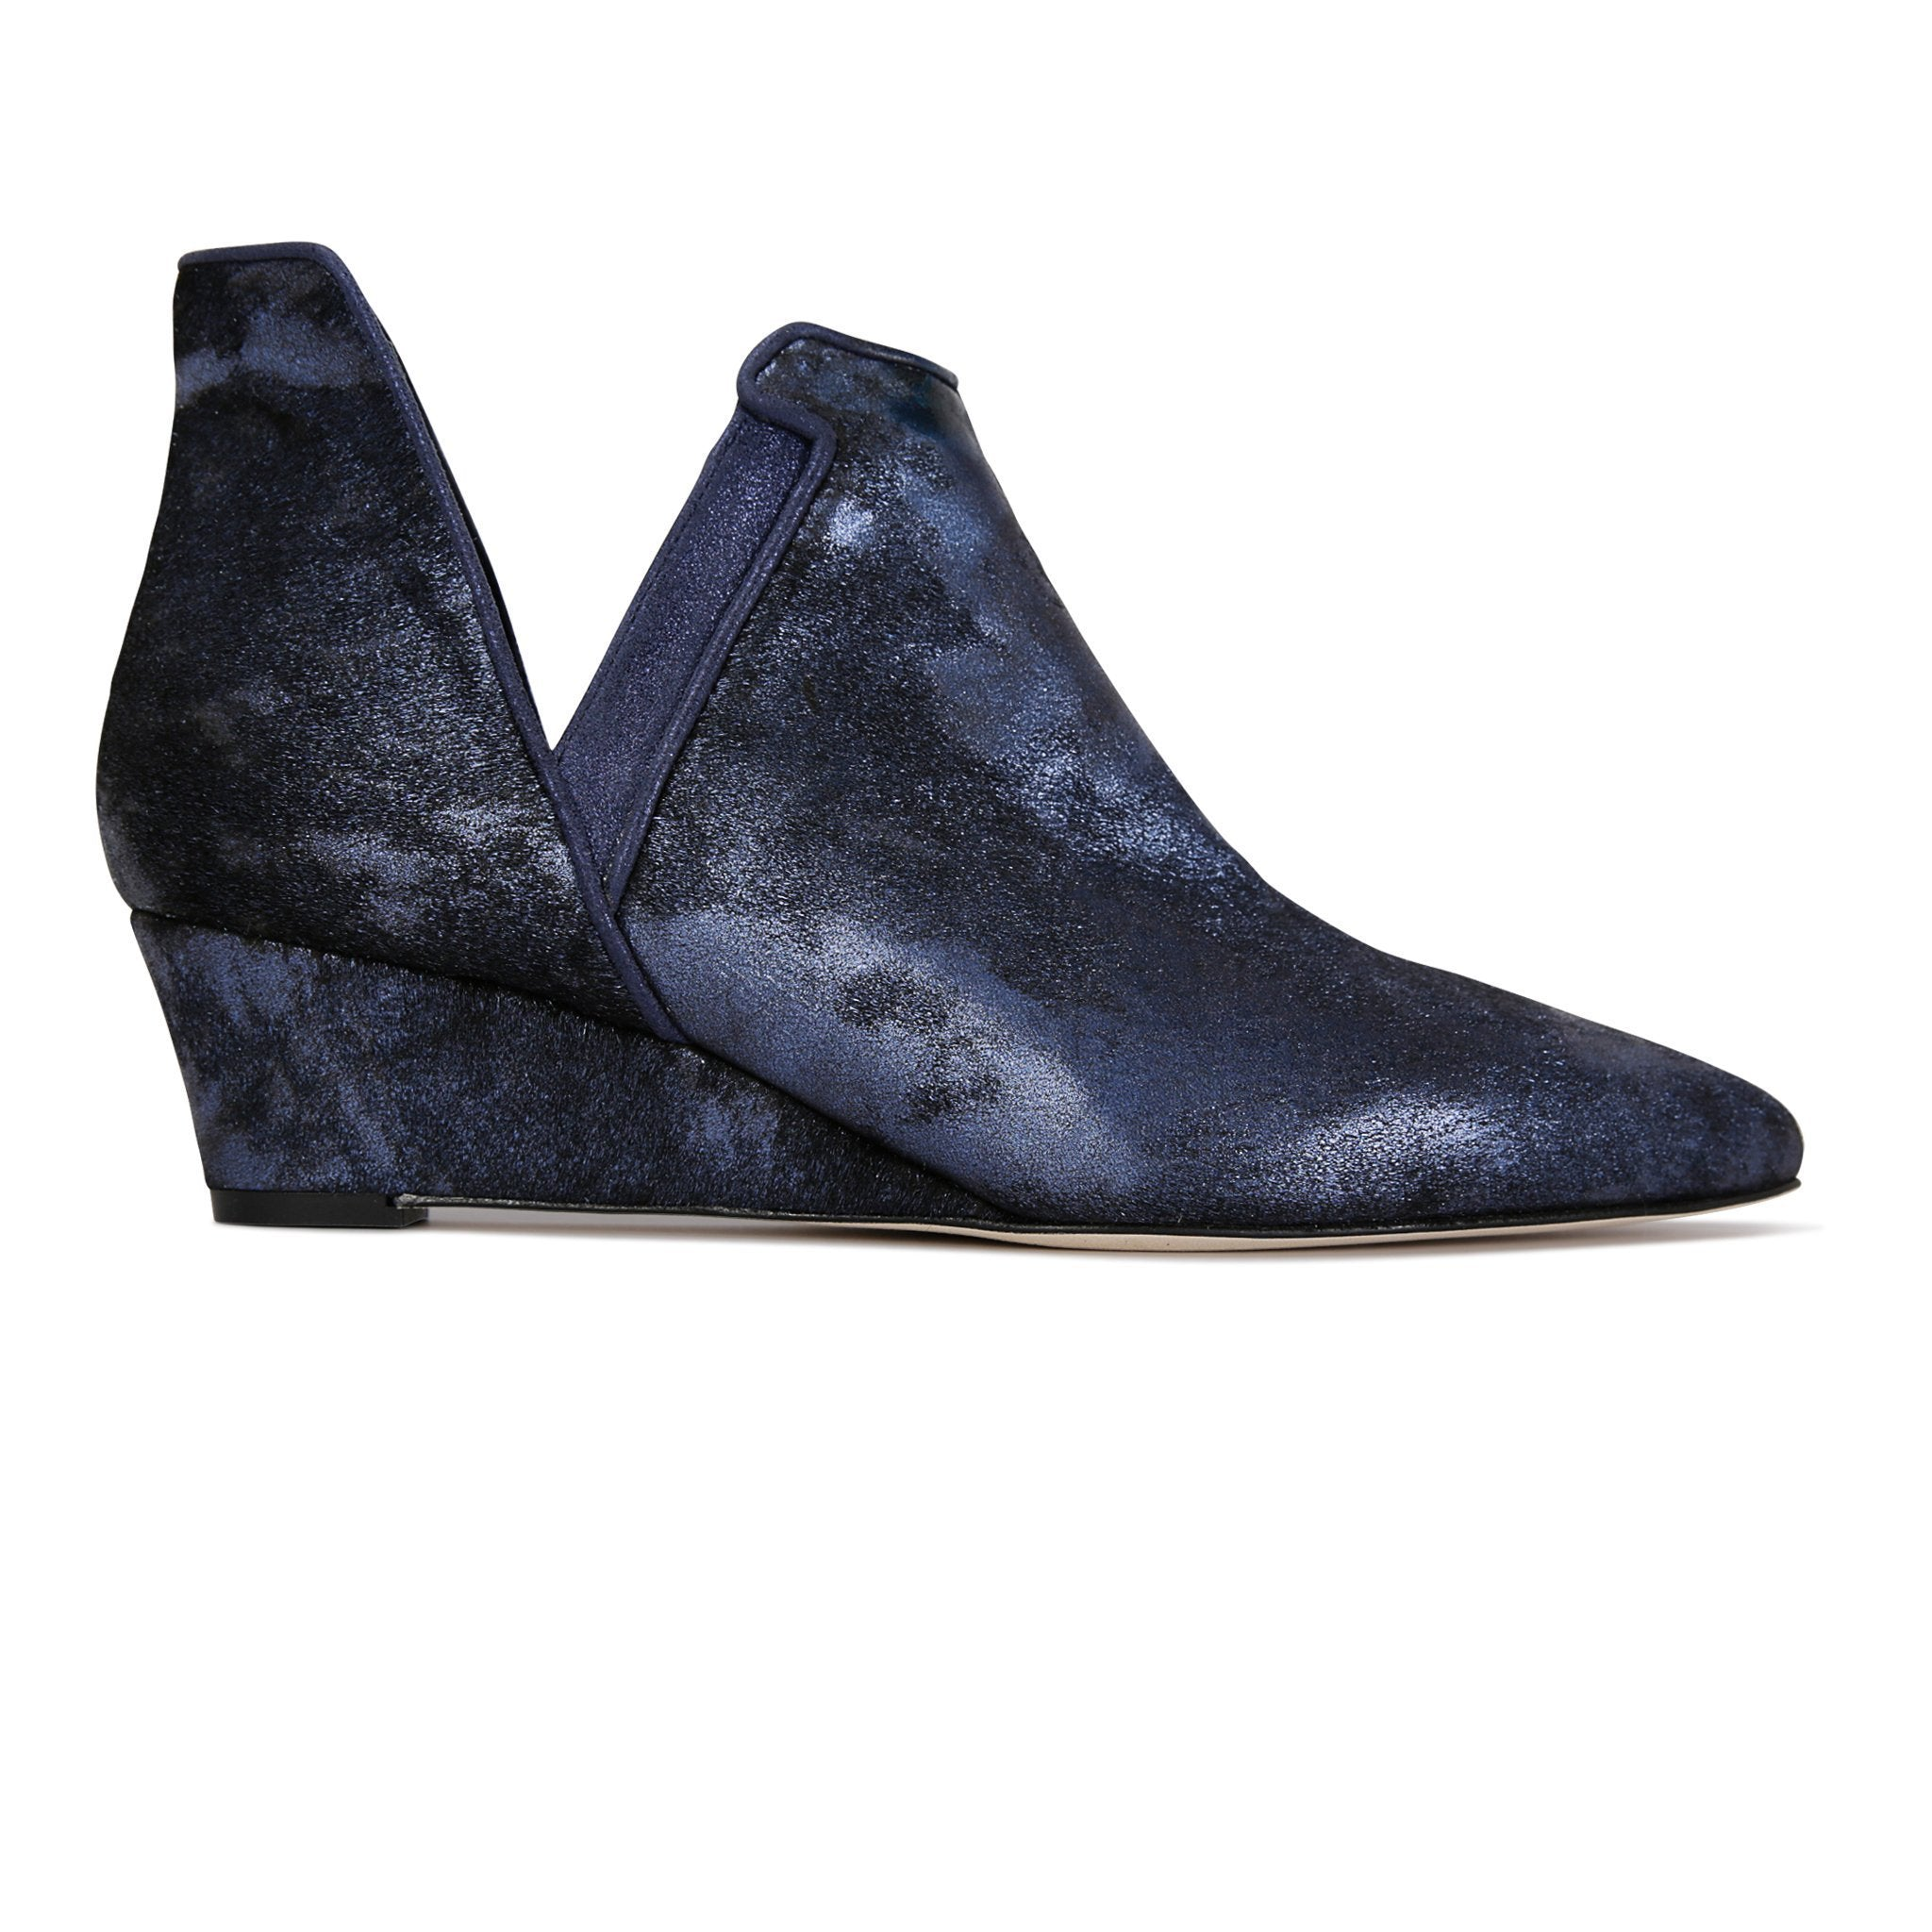 SYRENE - Calf Hair Vintage + Burma Midnight, VIAJIYU - Women's Hand Made Sustainable Luxury Shoes. Made in Italy. Made to Order.